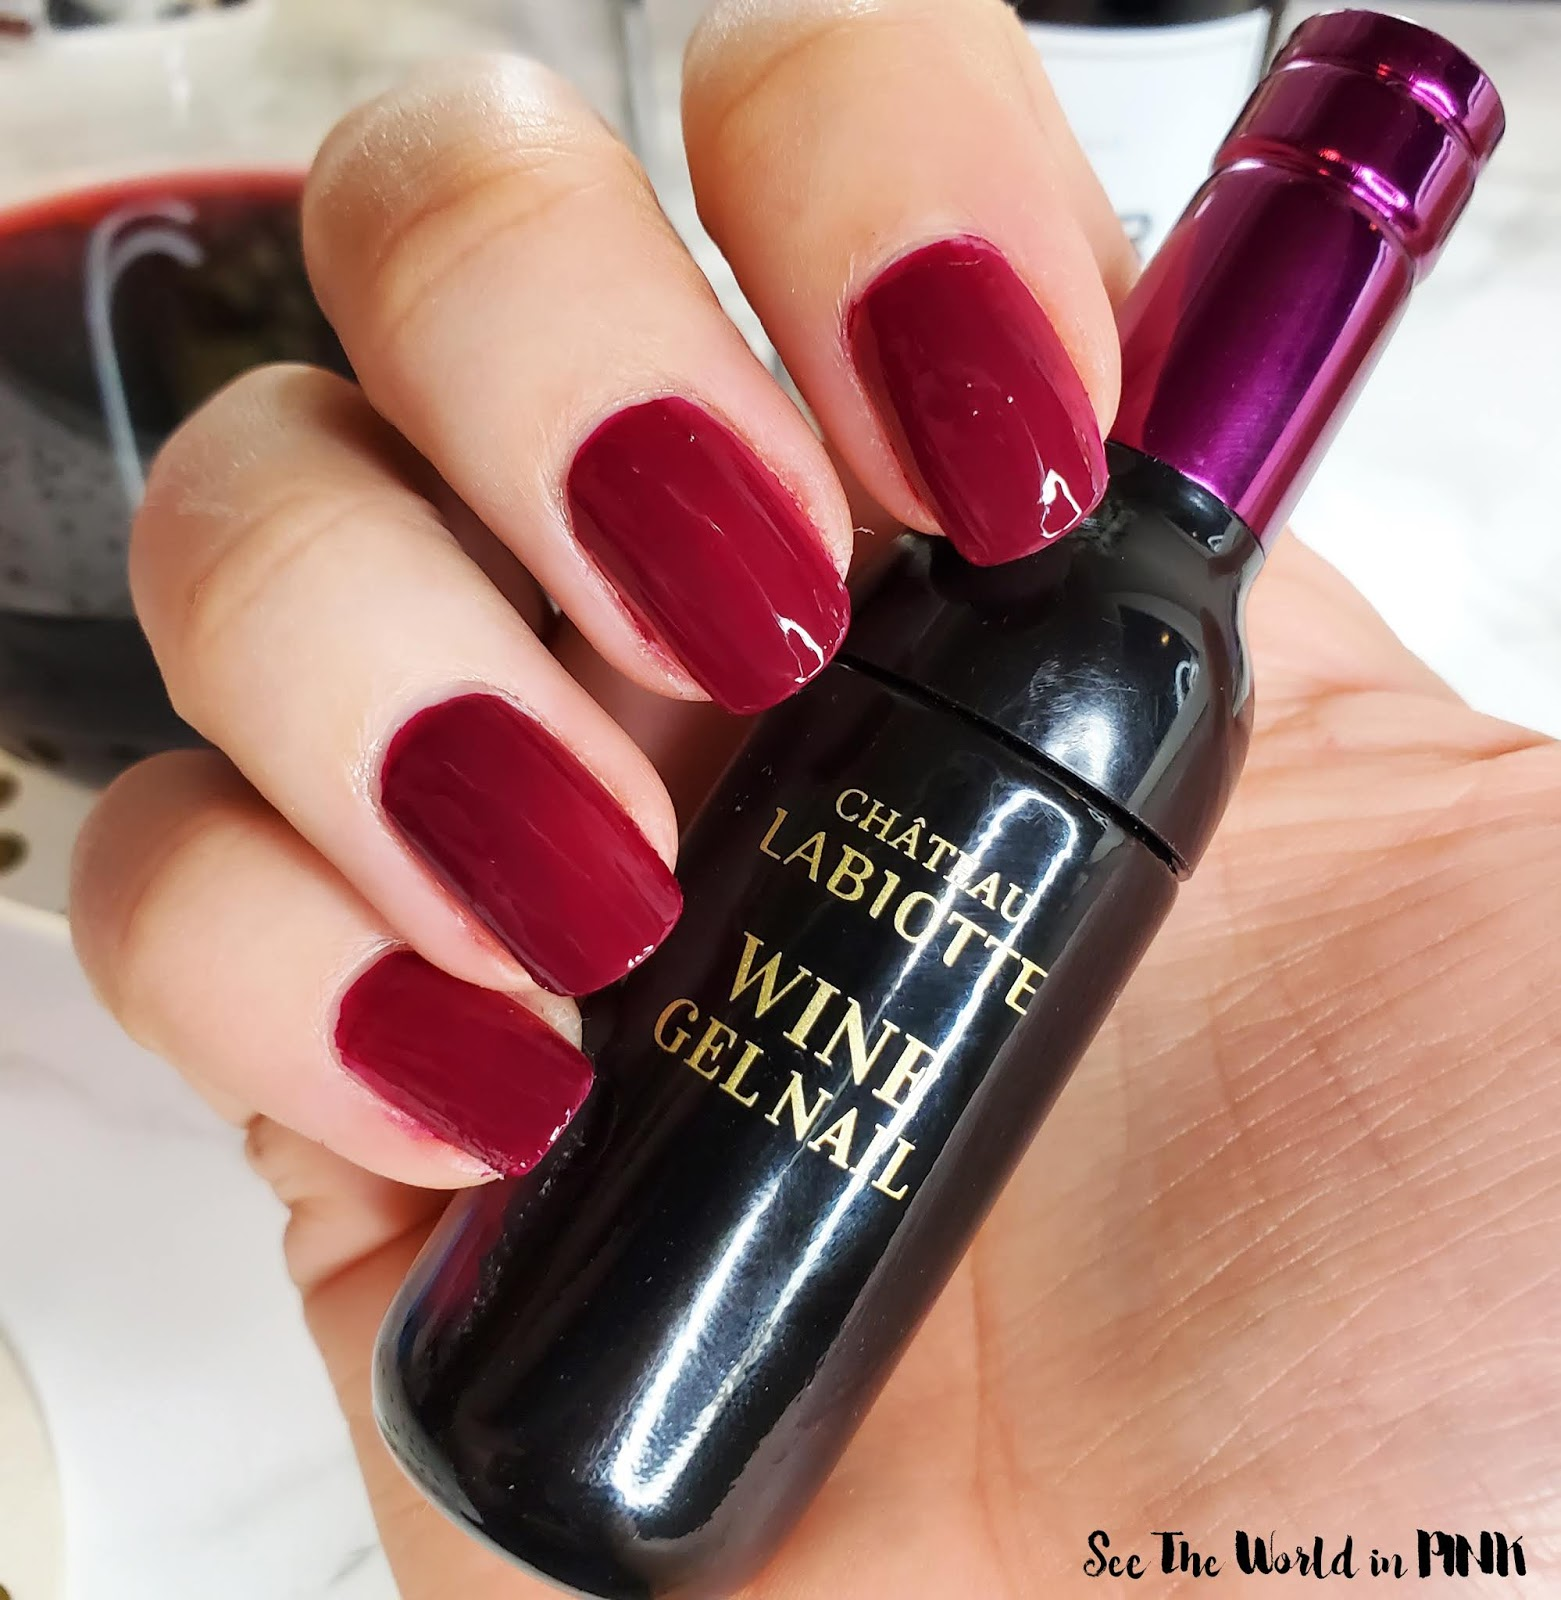 修指甲星期一-Labiotte Chateau Labiotte Wine Gel Nail在Nebbiolo Red